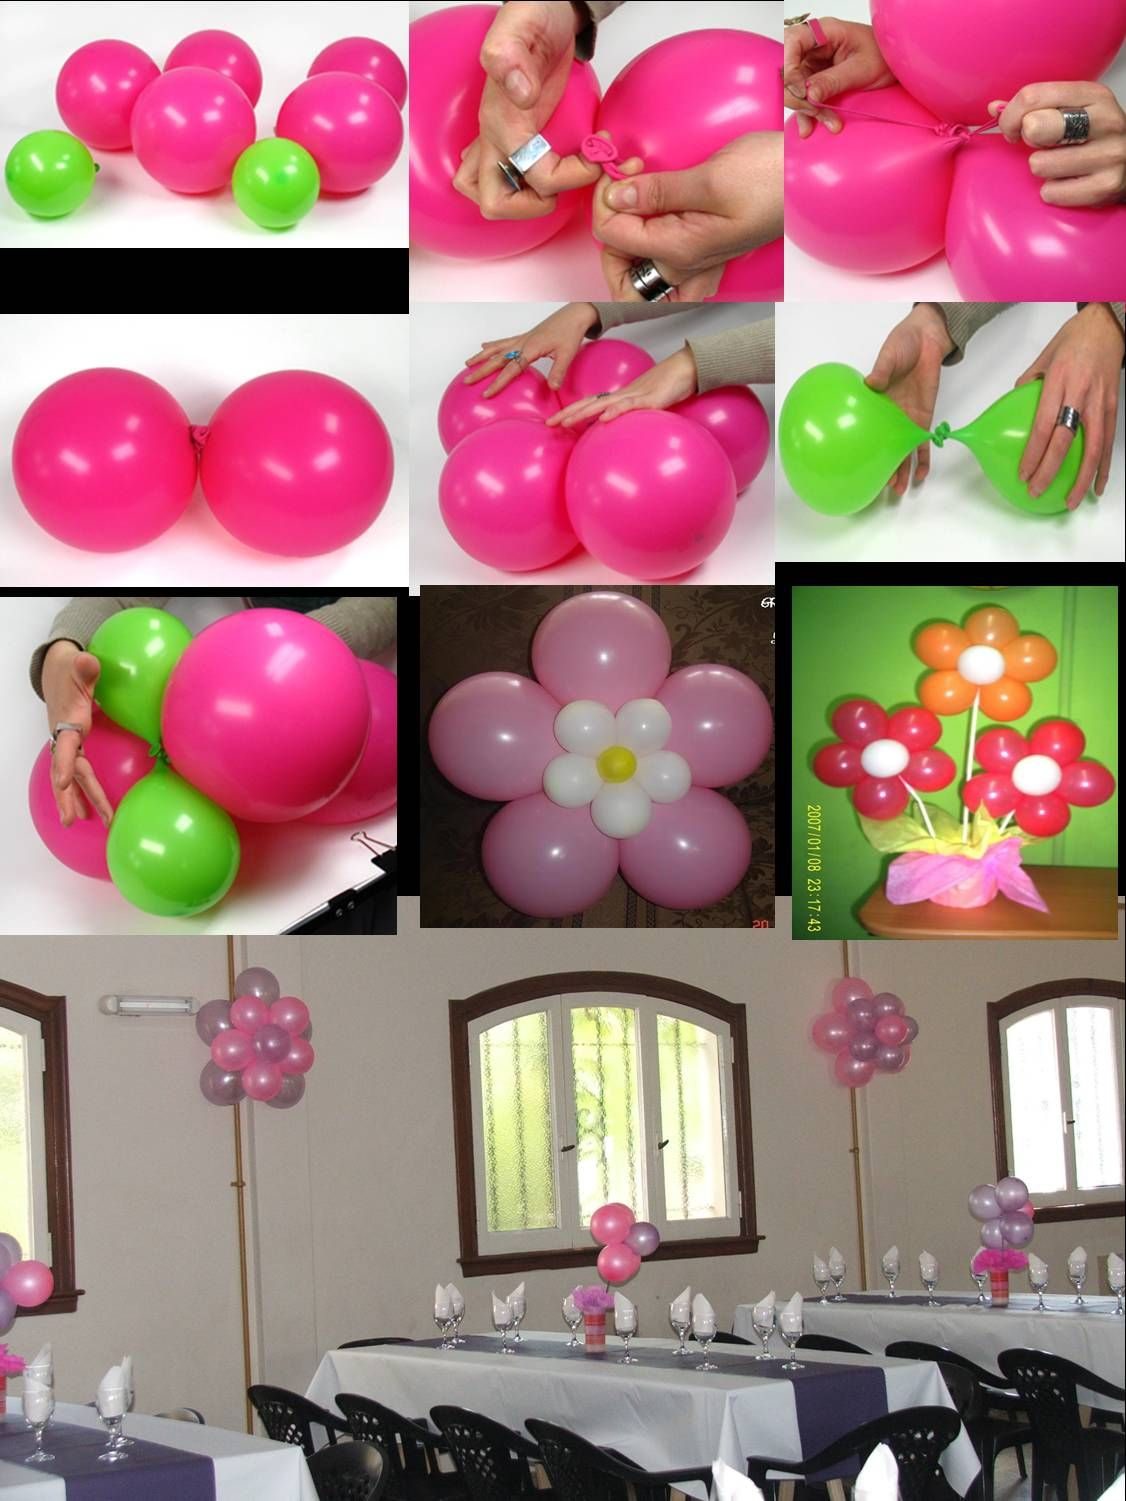 Tecnicas para decorar con globos como decorar un salon de for Decoracion para decorar